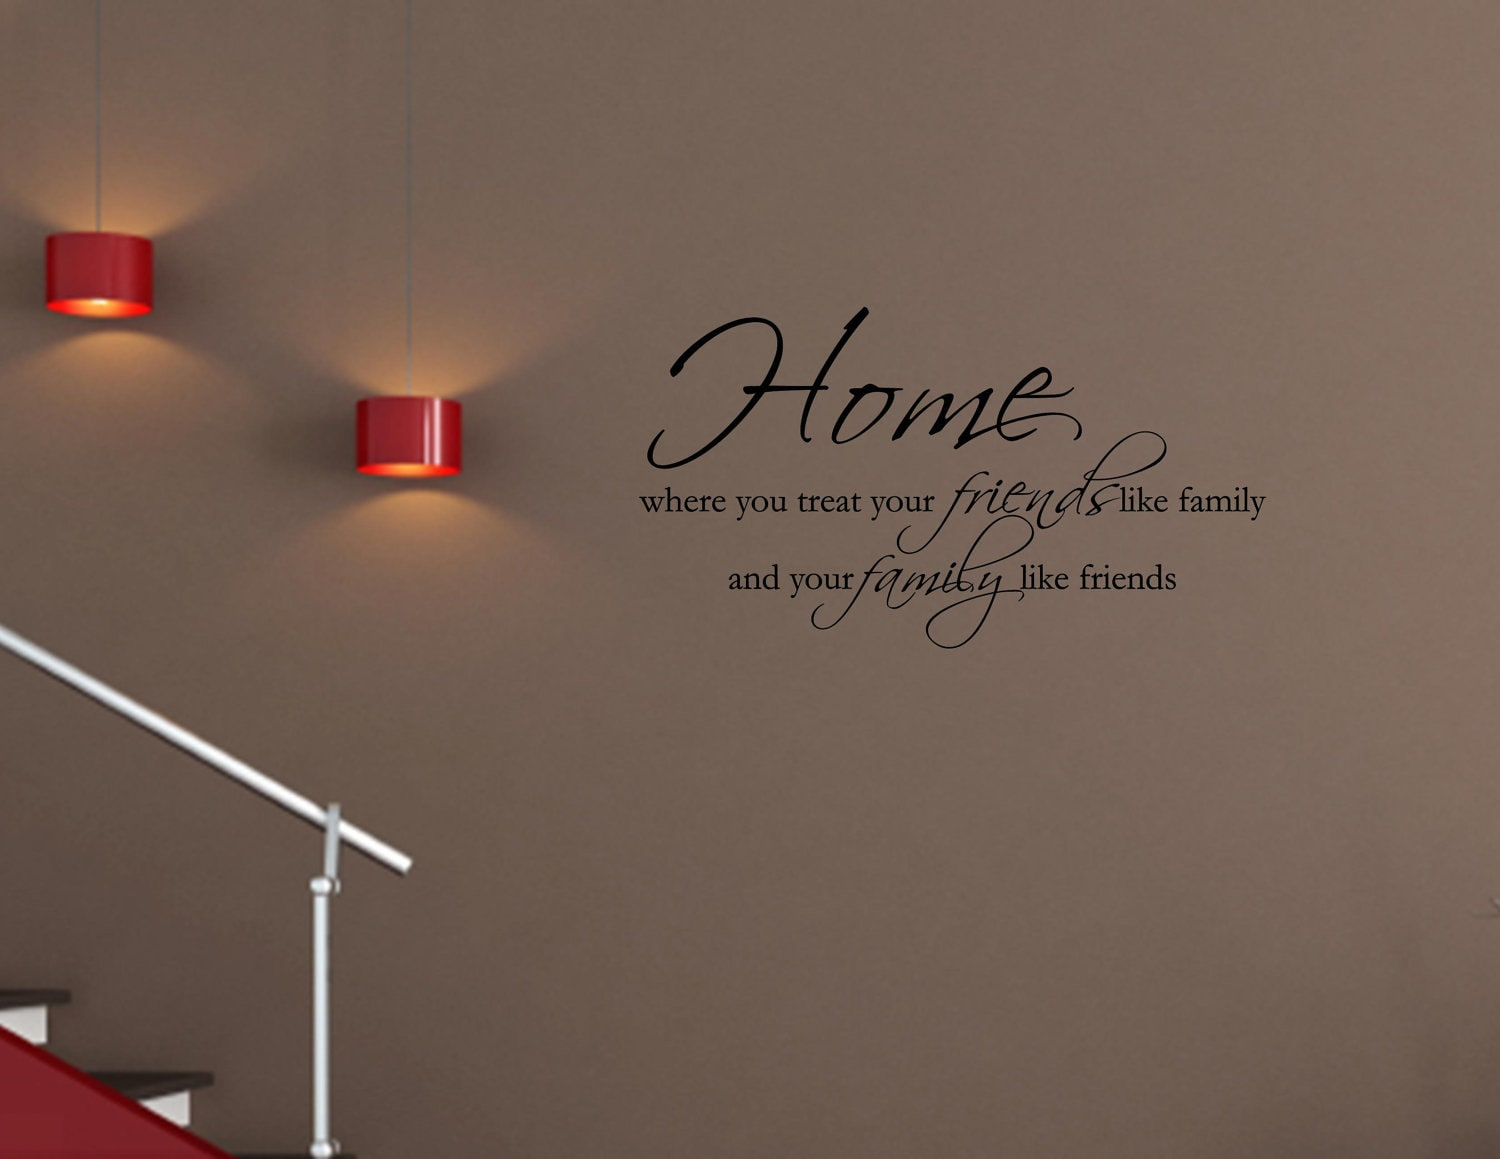 New Home Quotes New Home Quotes On Flipboard